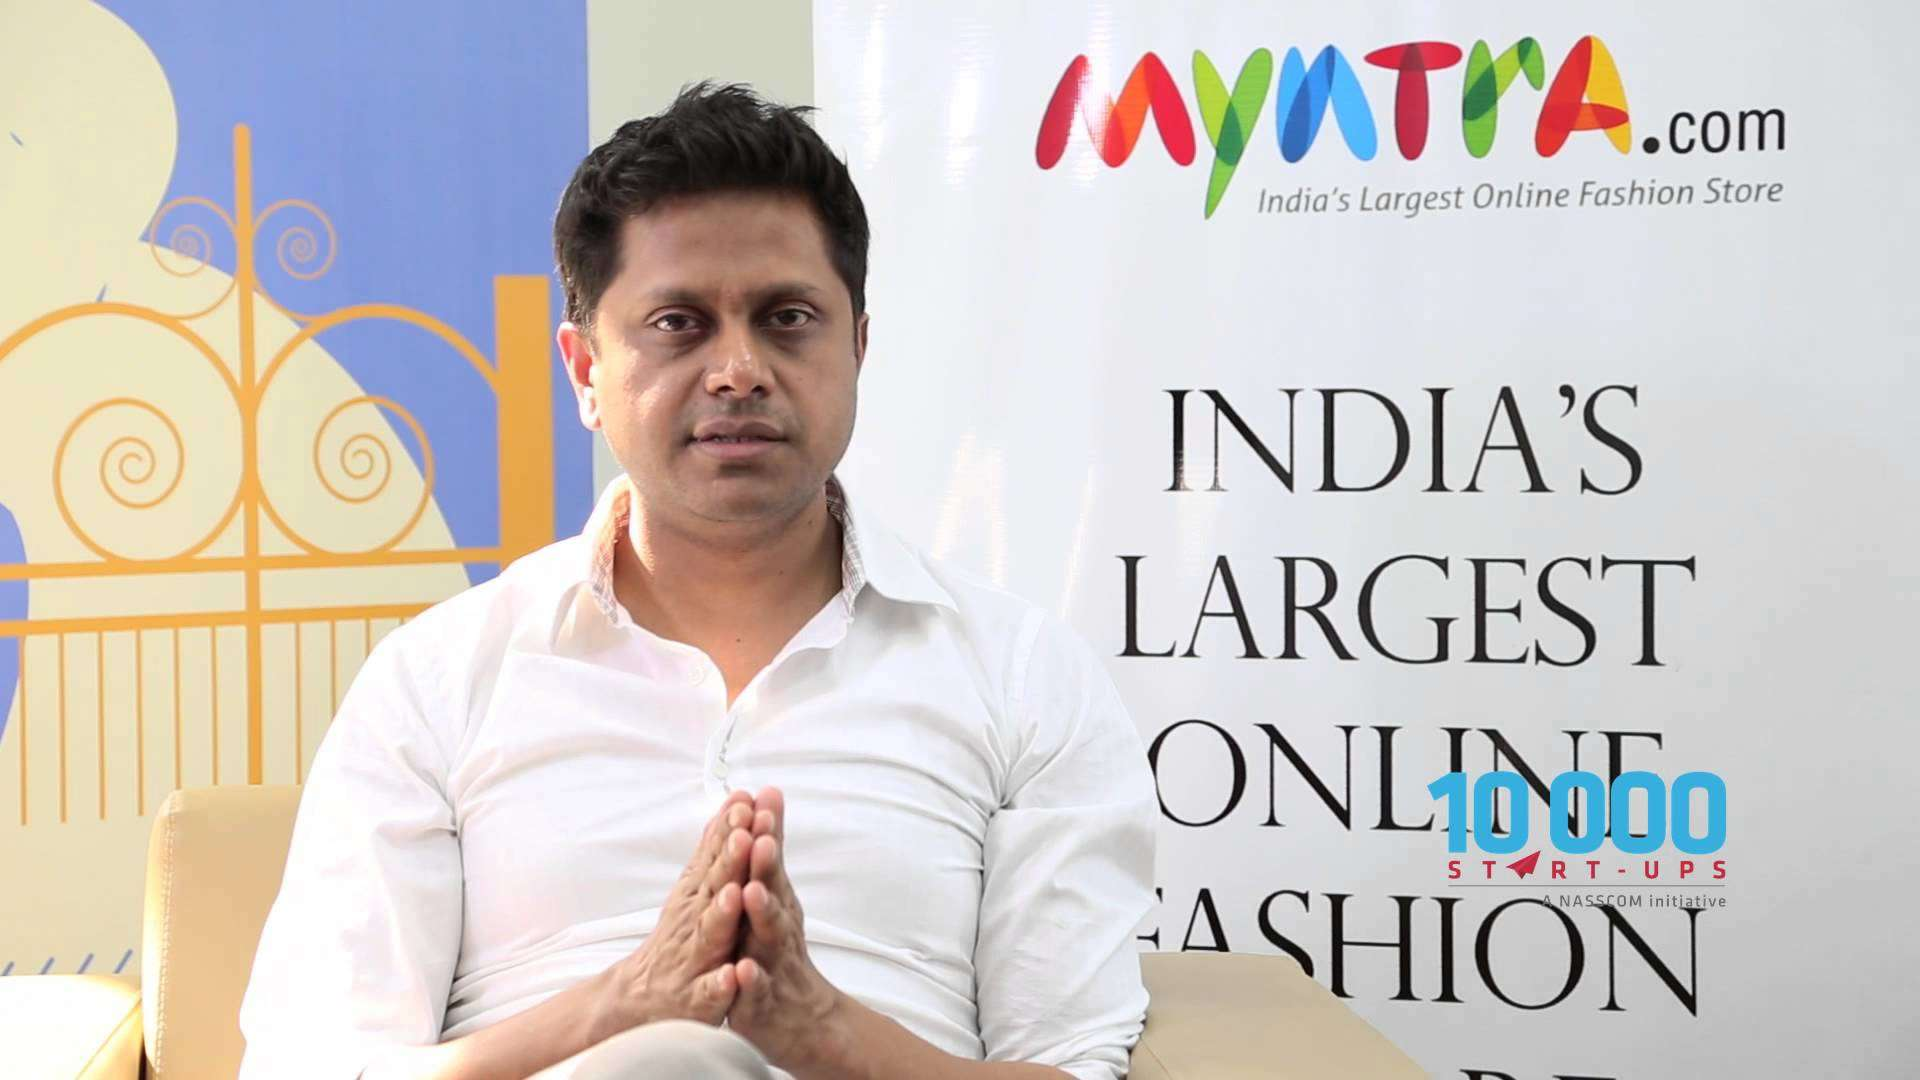 Mukesh Bansal Wrote A Heart Touching Farewell Letter To Flipkart Employees